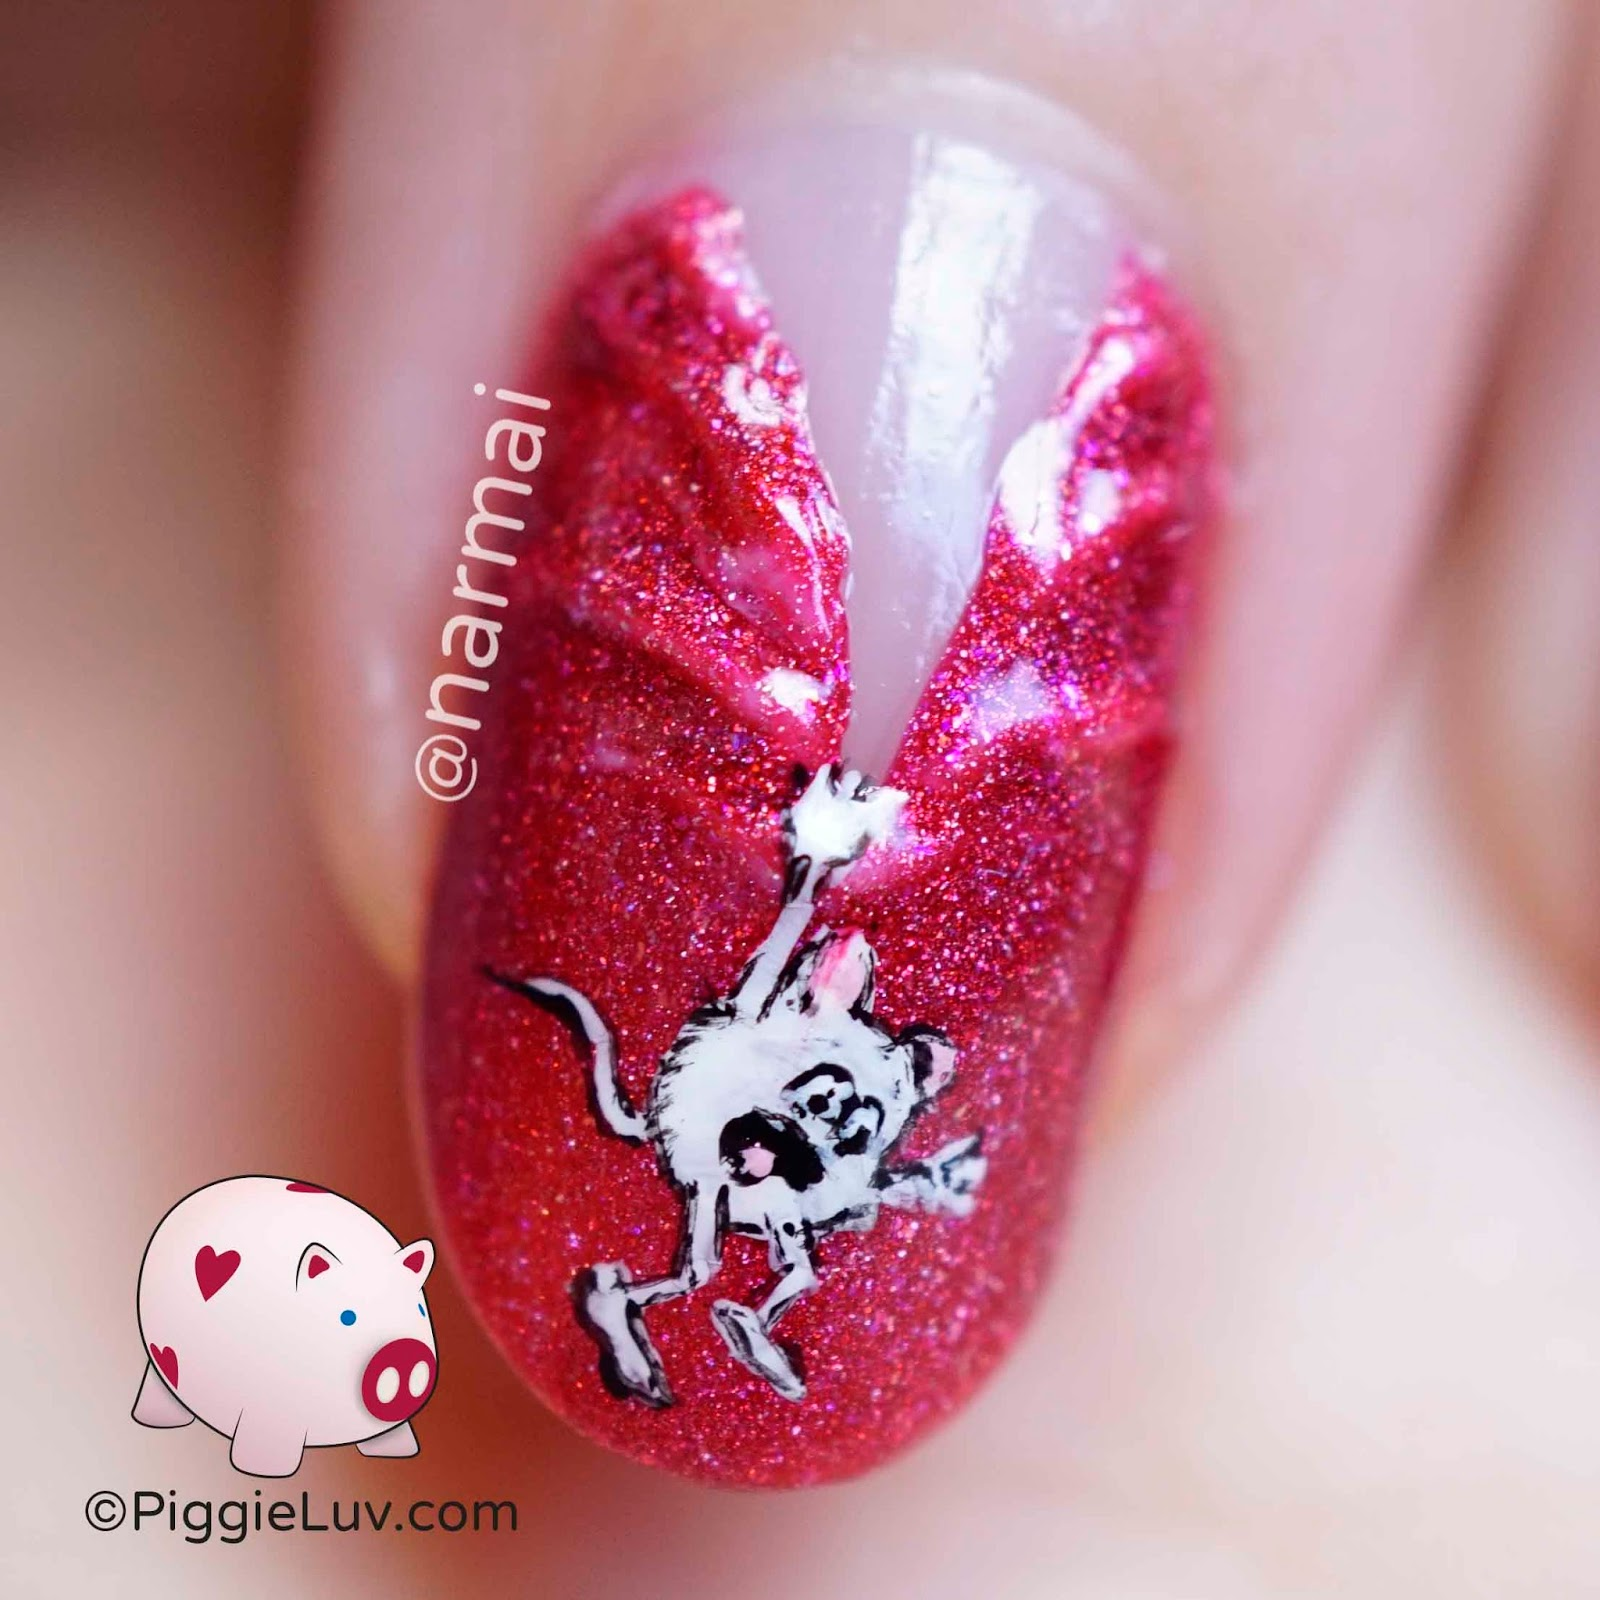 Piggieluv hanging on nail art ft picture polish scarlett hanging on nail art ft picture polish scarlett prinsesfo Images